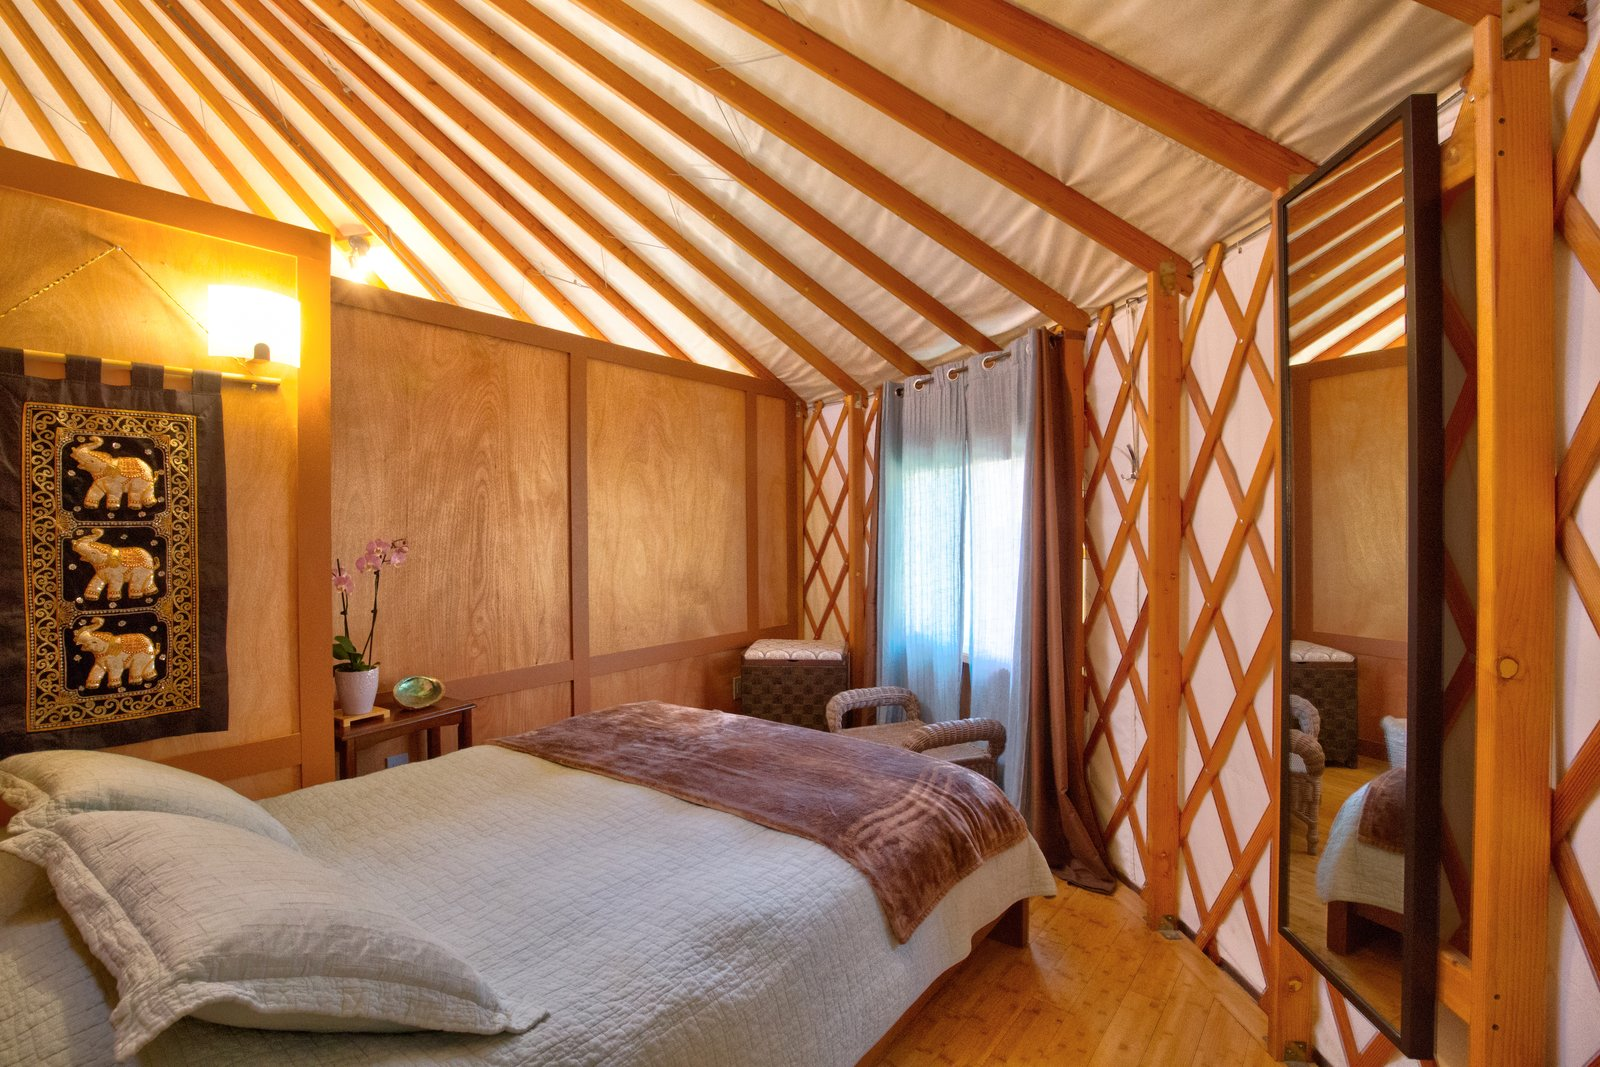 Bedroom, Medium Hardwood Floor, Wall Lighting, Bed, and Night Stands The smaller bedroom is tucked behind a partition for privacy.  Photo 7 of 10 in This Santa Barbara Yurt Is the Ultimate Place to Recharge